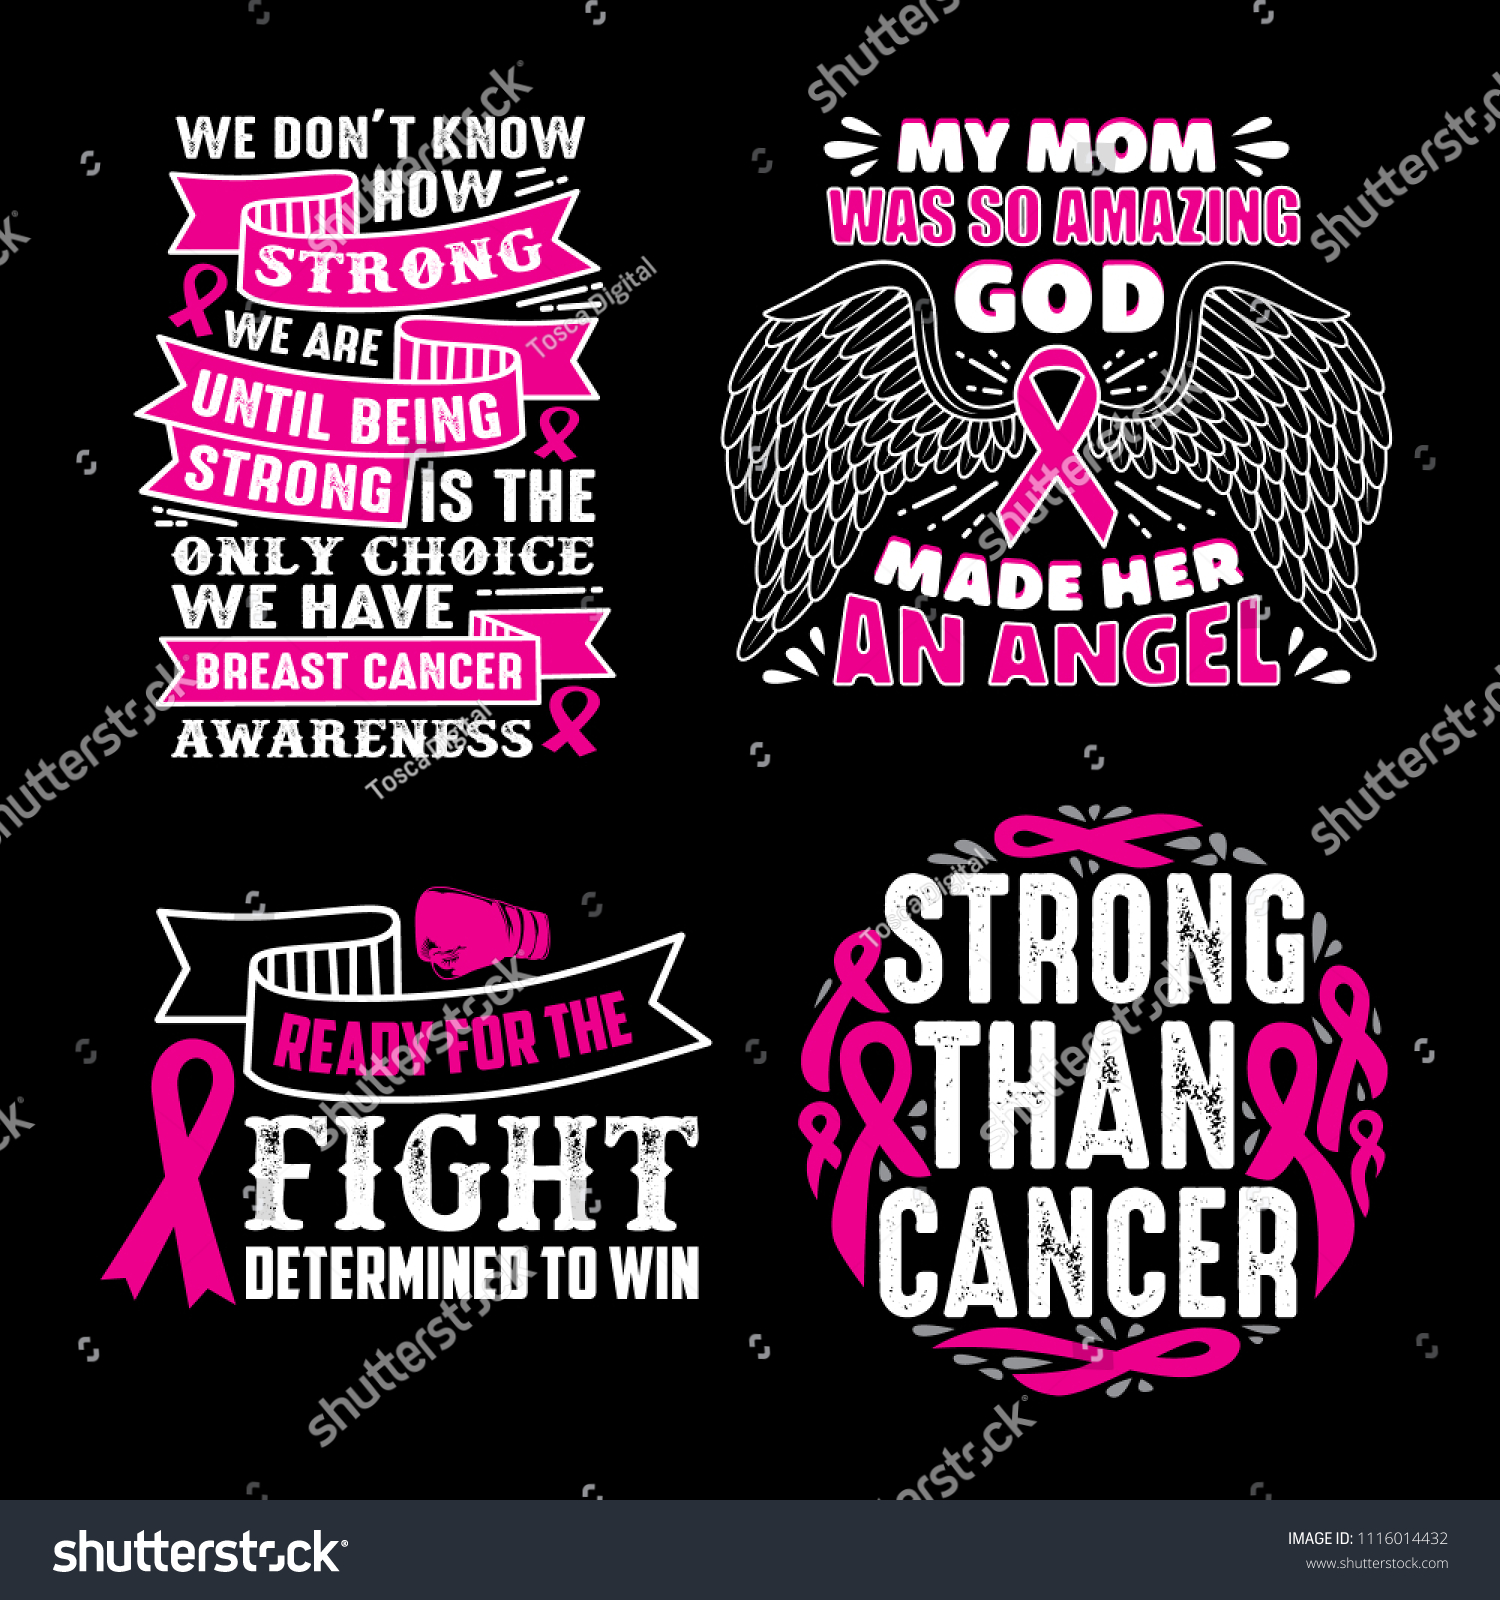 Breast Cancer Quotes Saying 100 Vector Stock Vector (Royalty ...